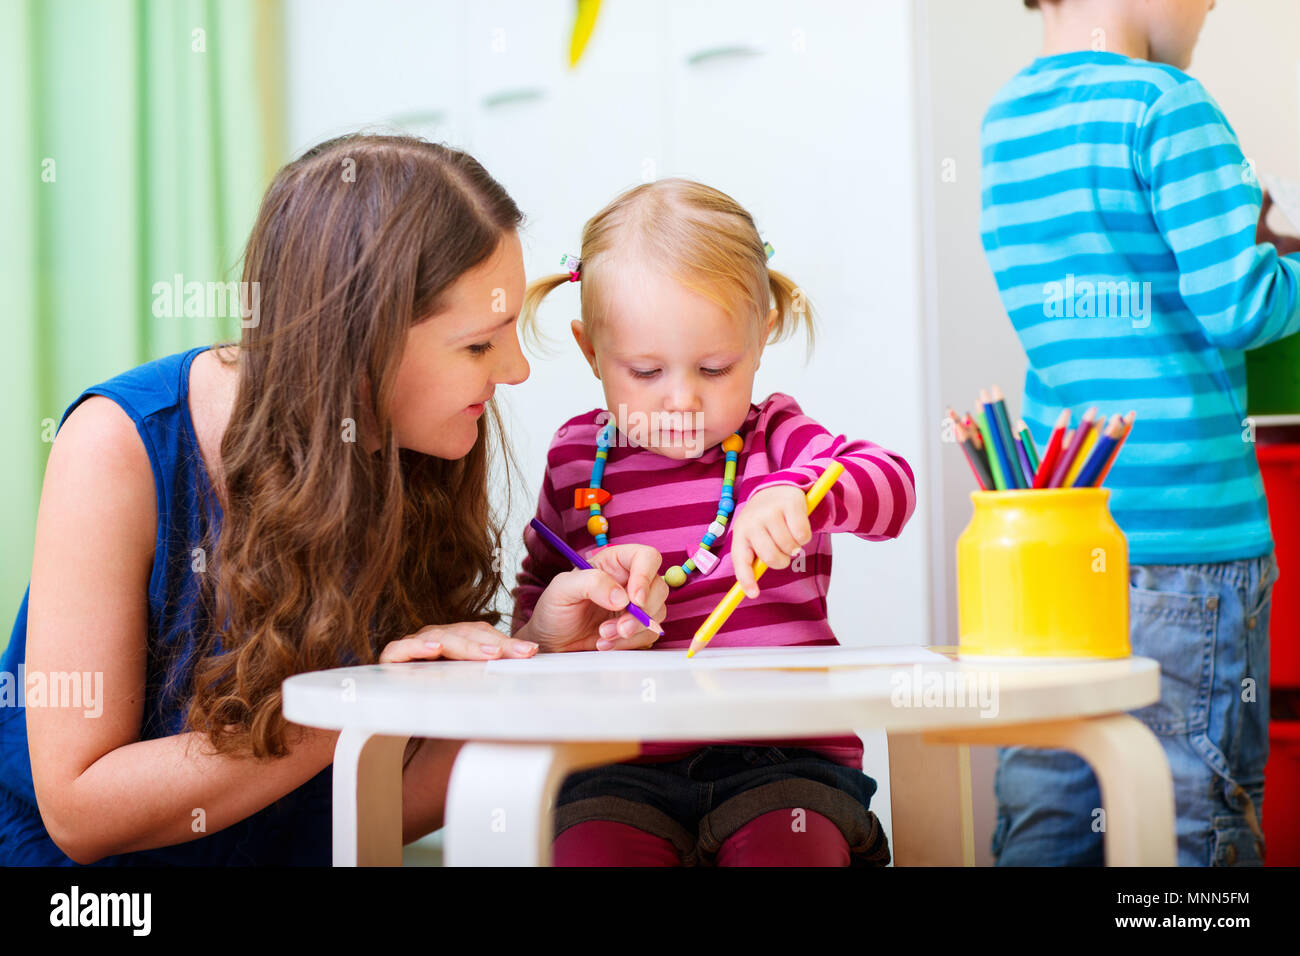 Young mother and her daughter drawing together. Also perfect for kindergarten daycare context. - Stock Image